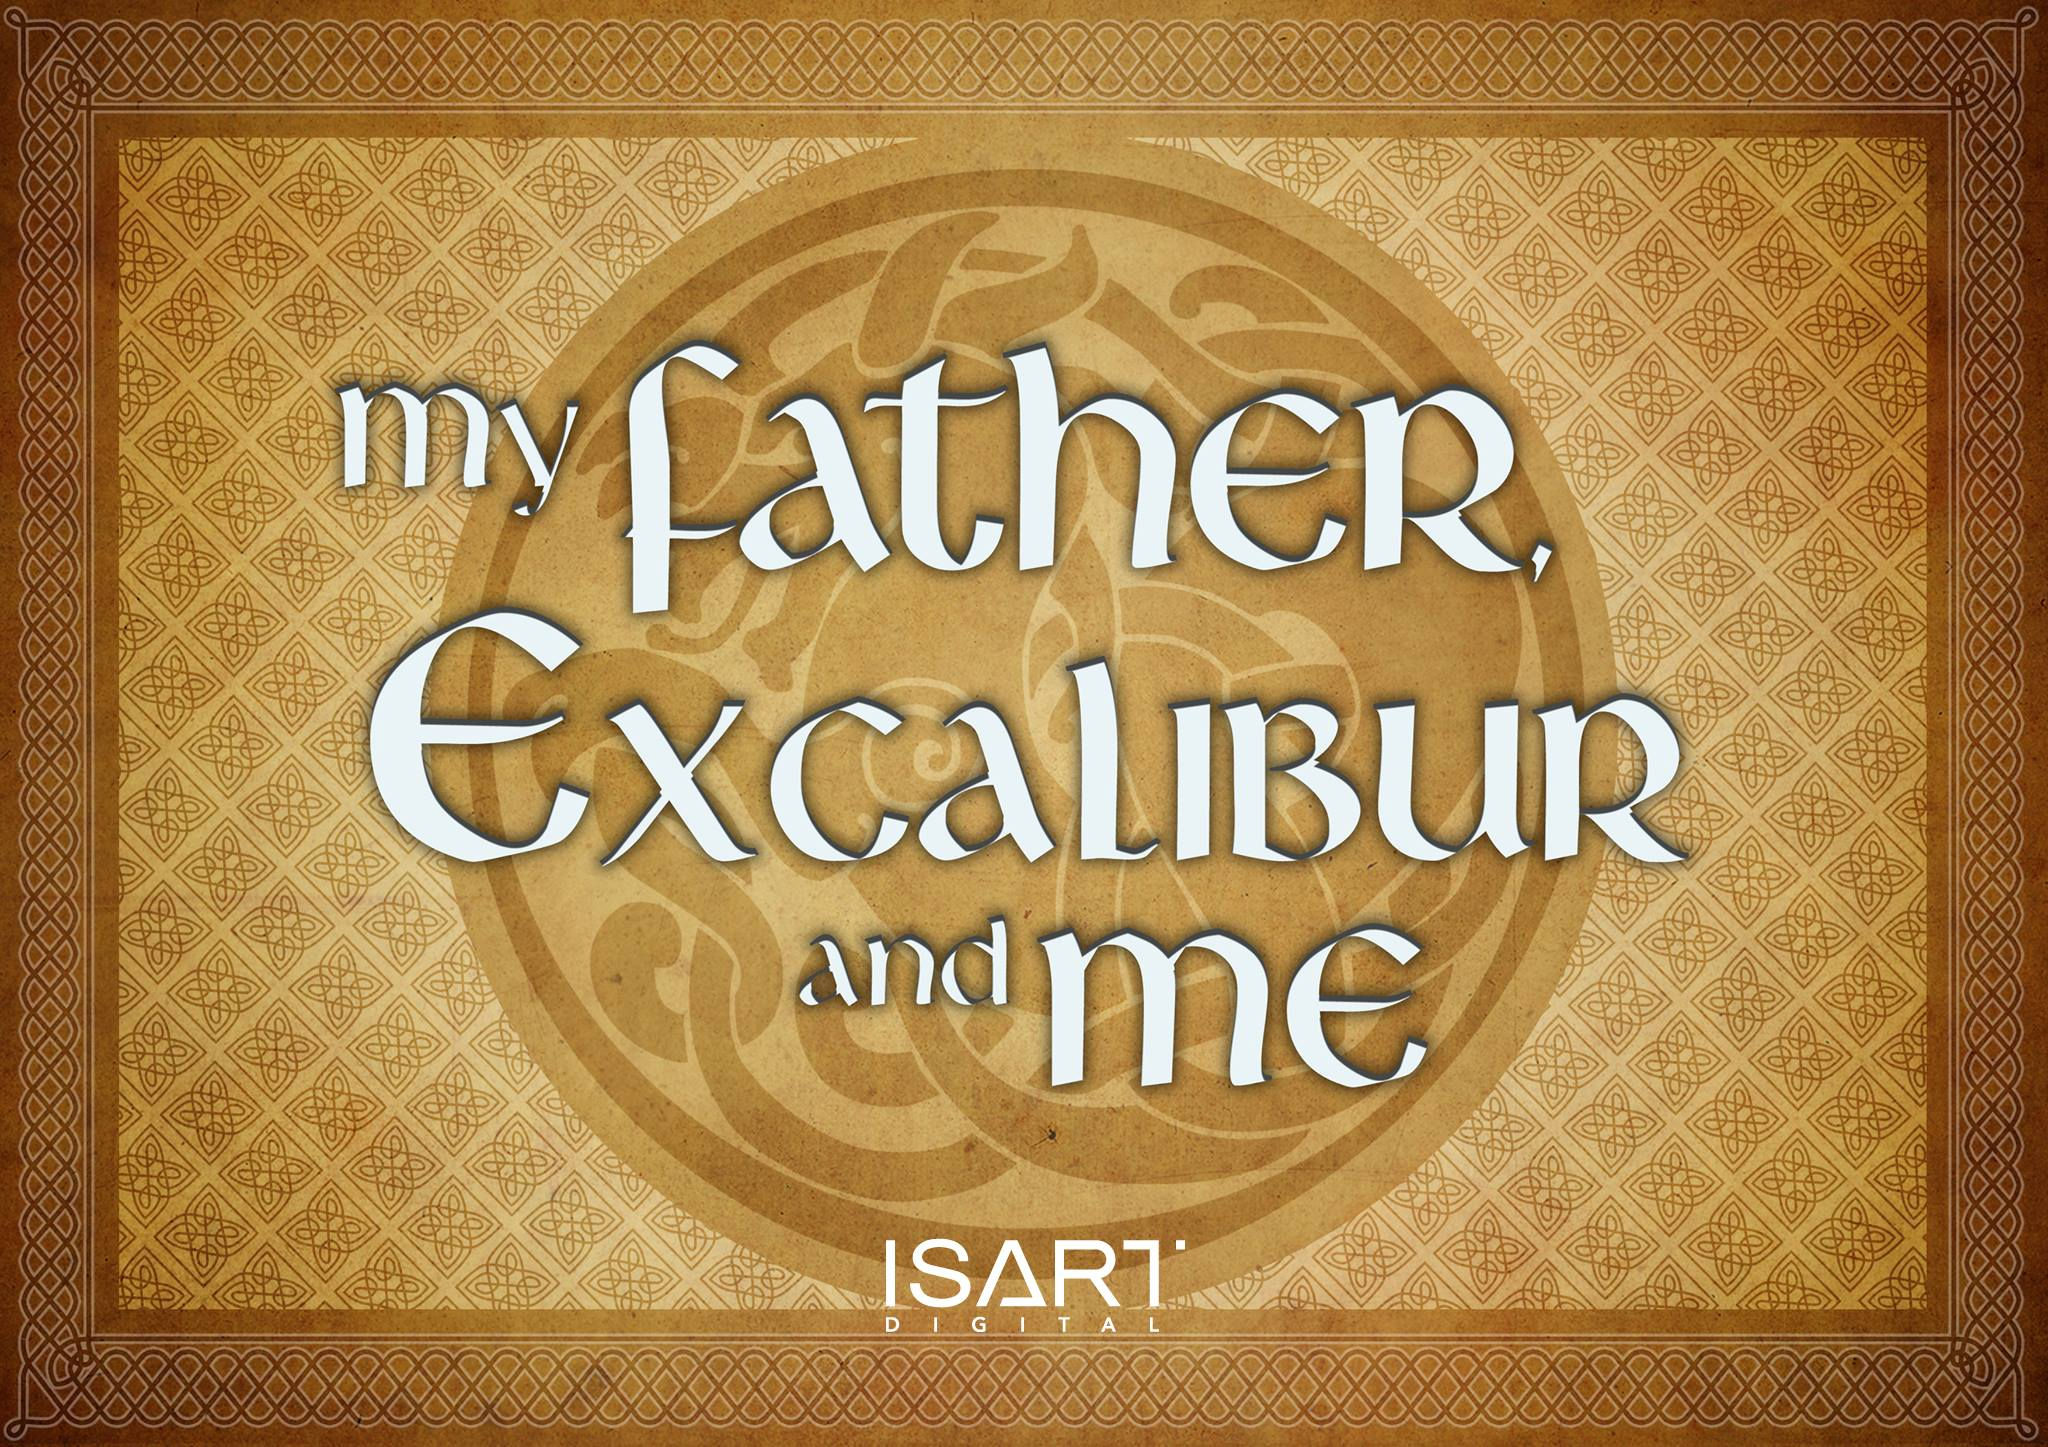 Studios VOA pour My father, Excalibur and me - ISART